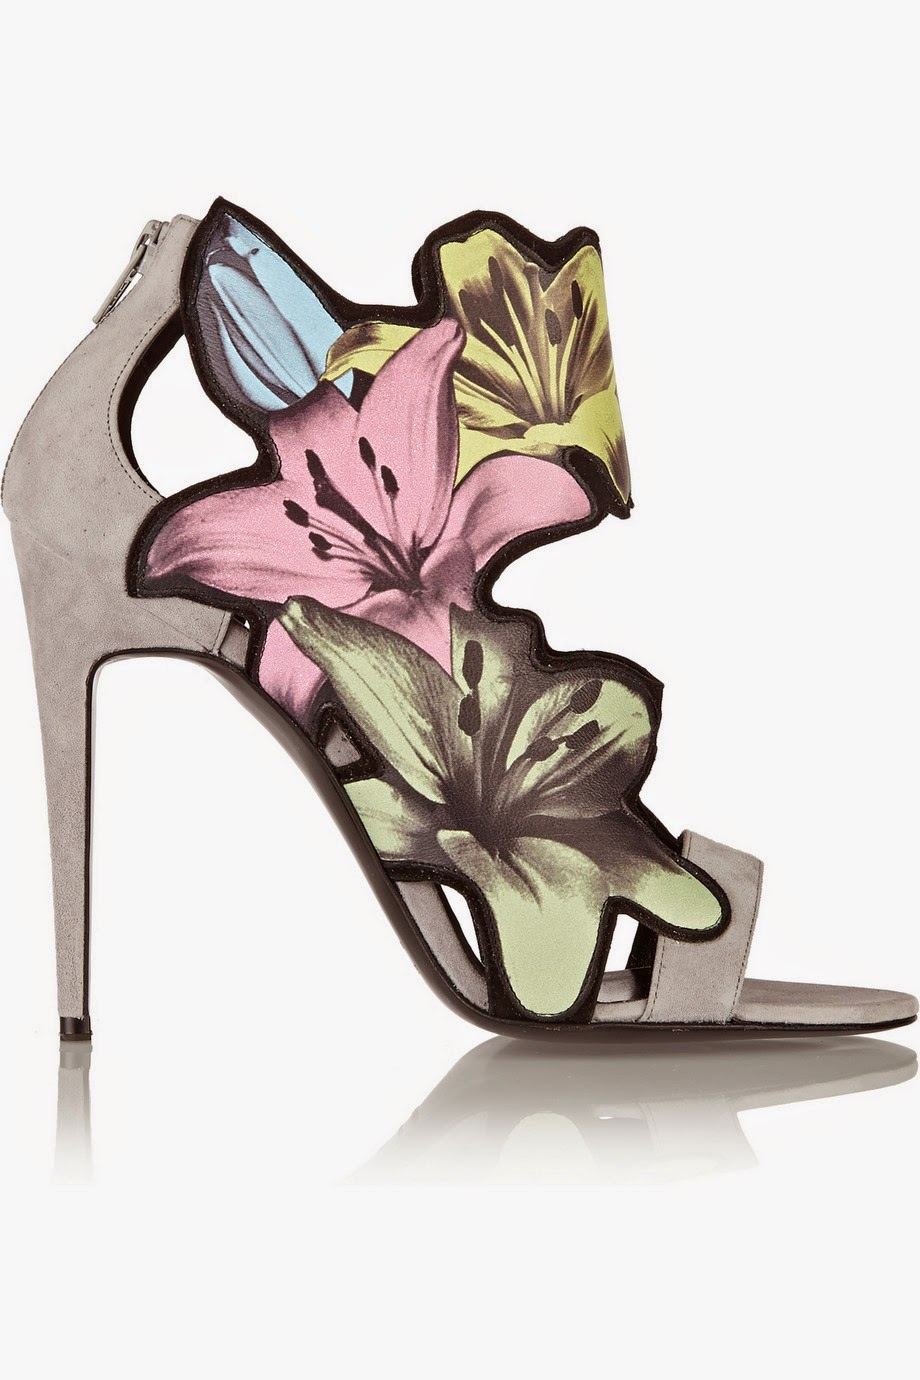 PIERRE HARDY Grey suede flower appliqué sandals